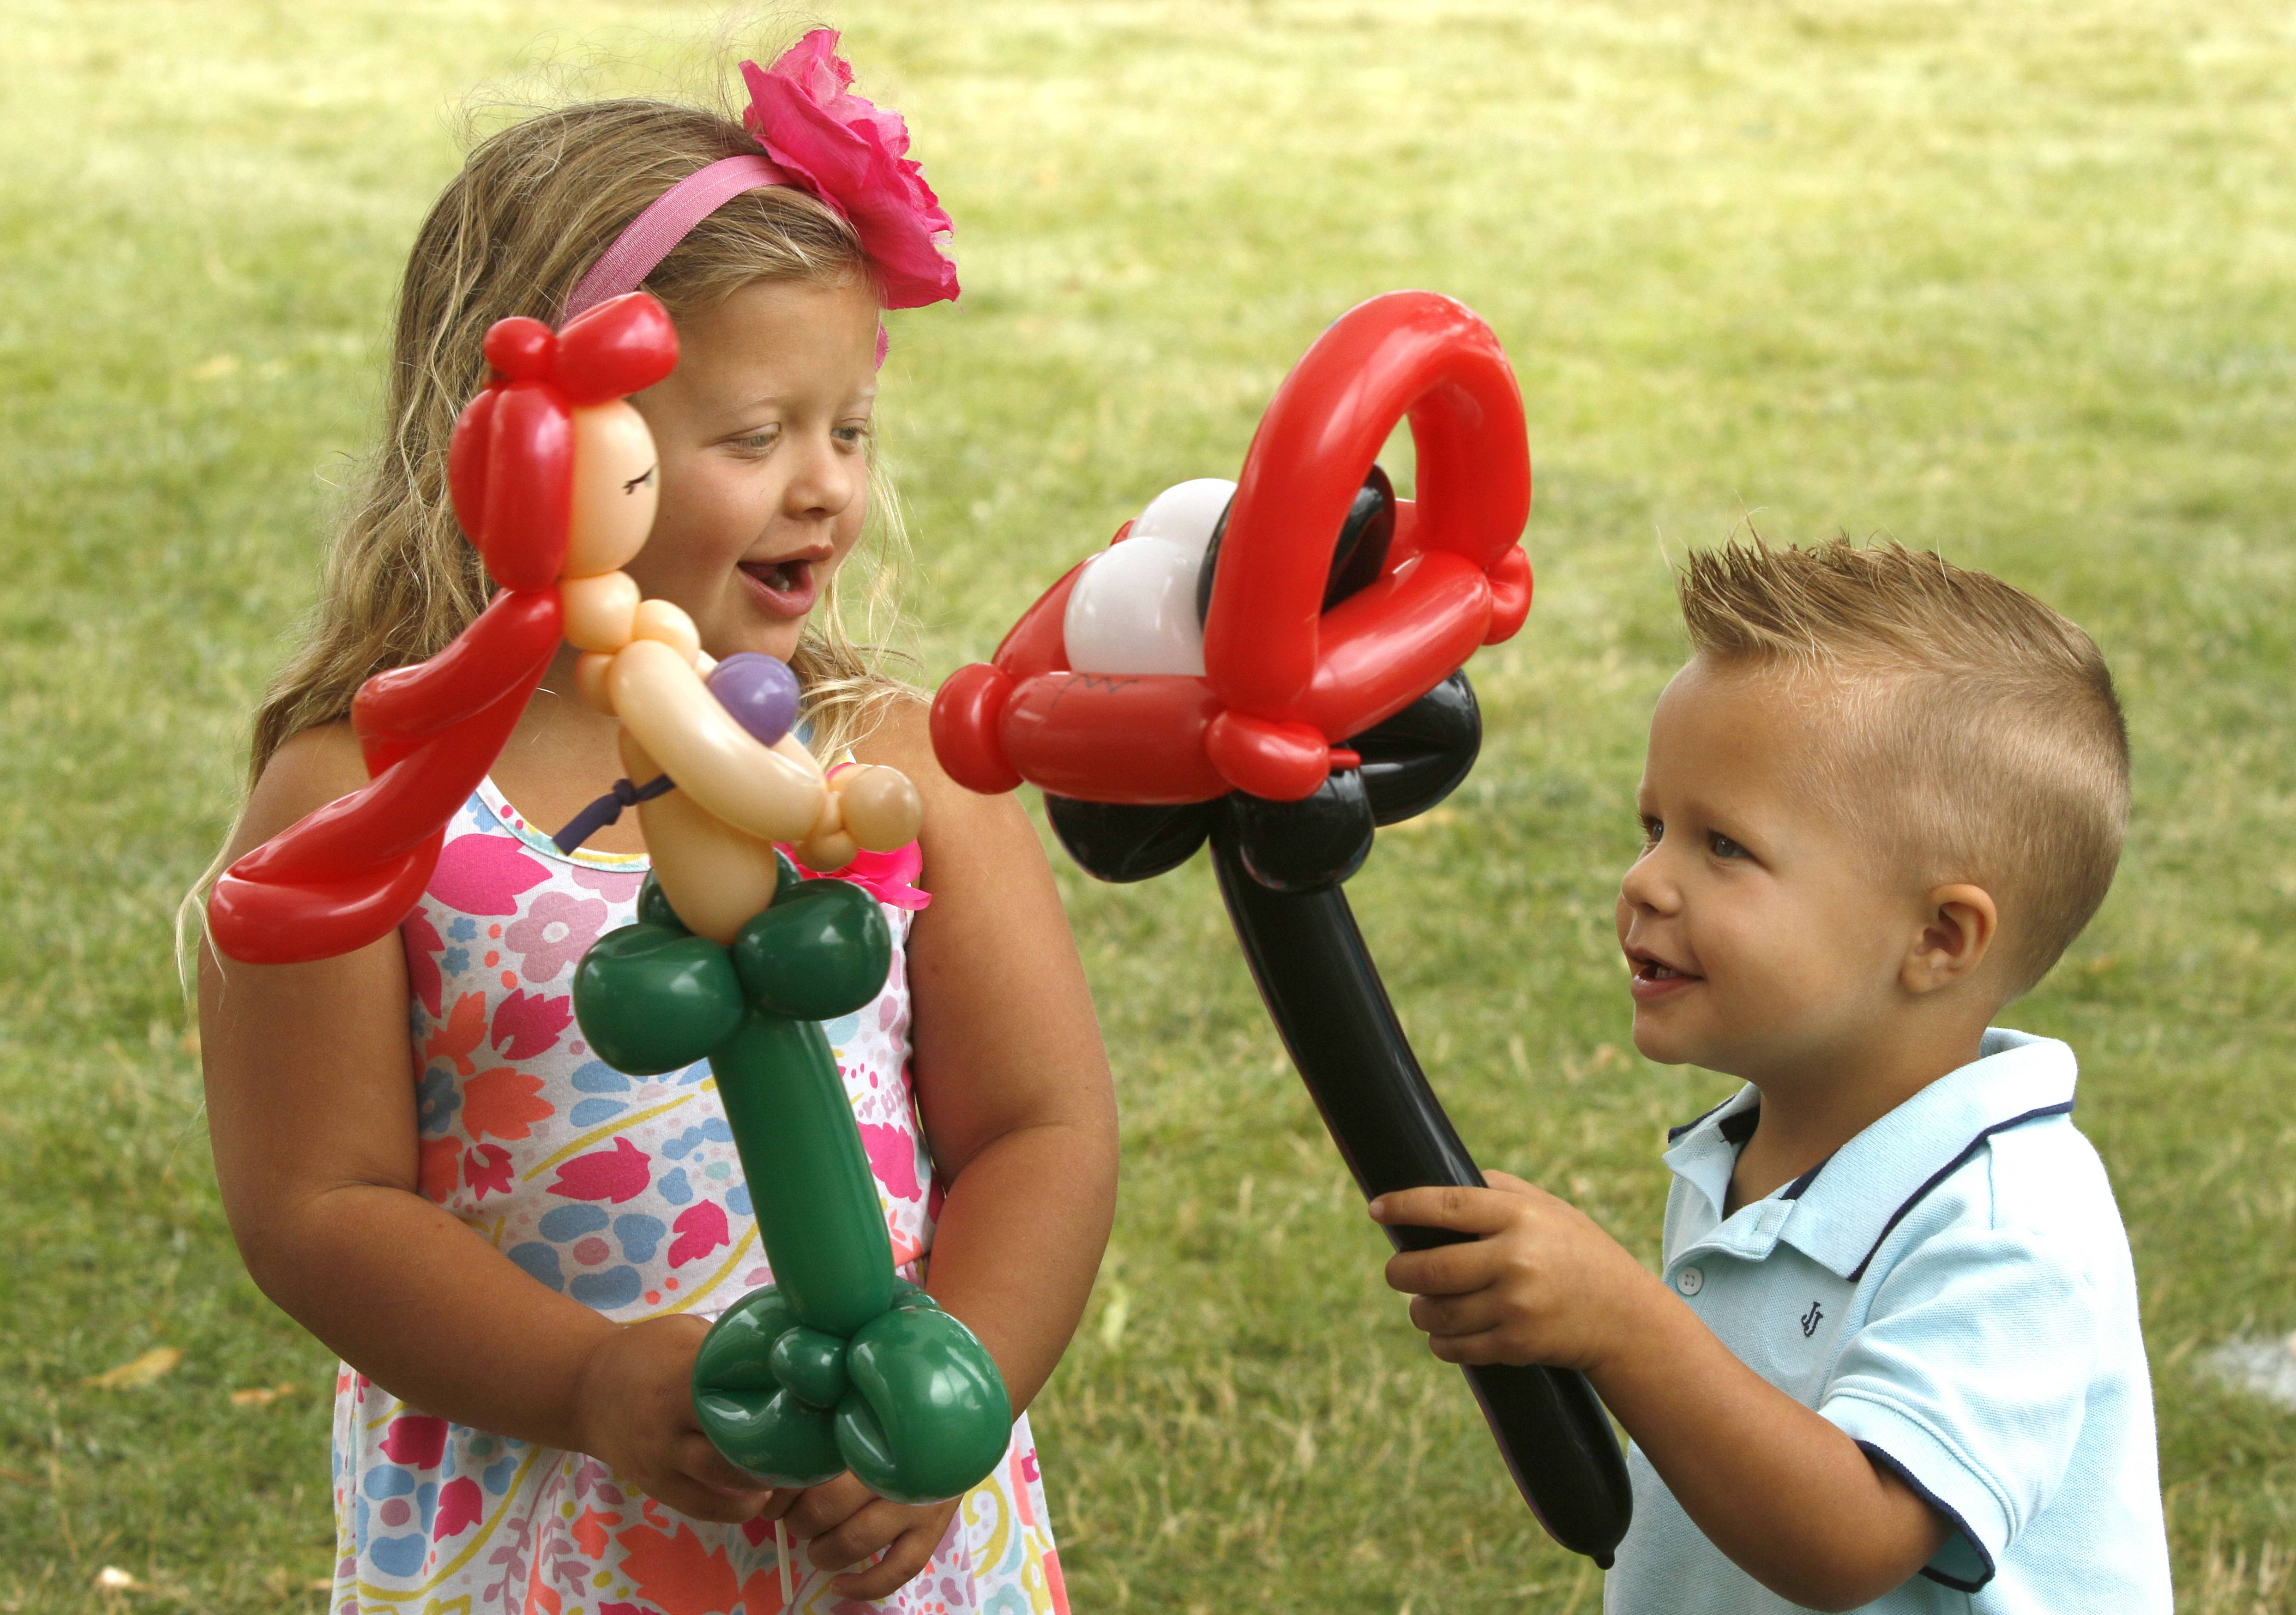 Kimber Gruber, 5, left, and her brother Landon, 3, right, of Itasca show each other balloons made by Custers Family Entertainment on Sunday, while enjoying the final hours of Itasca Fest.